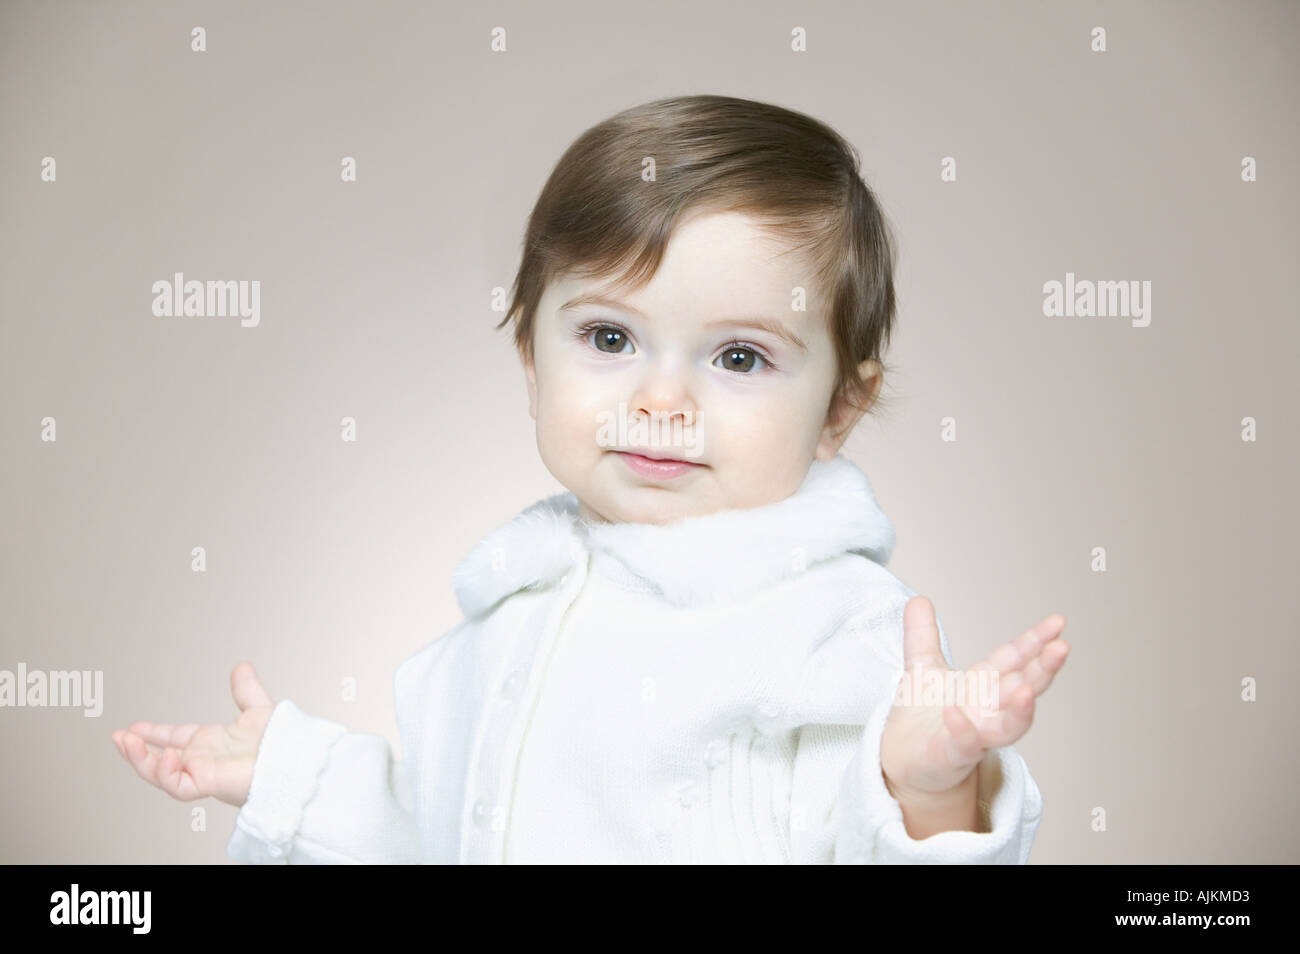 Innocent looking baby girl - Stock Image